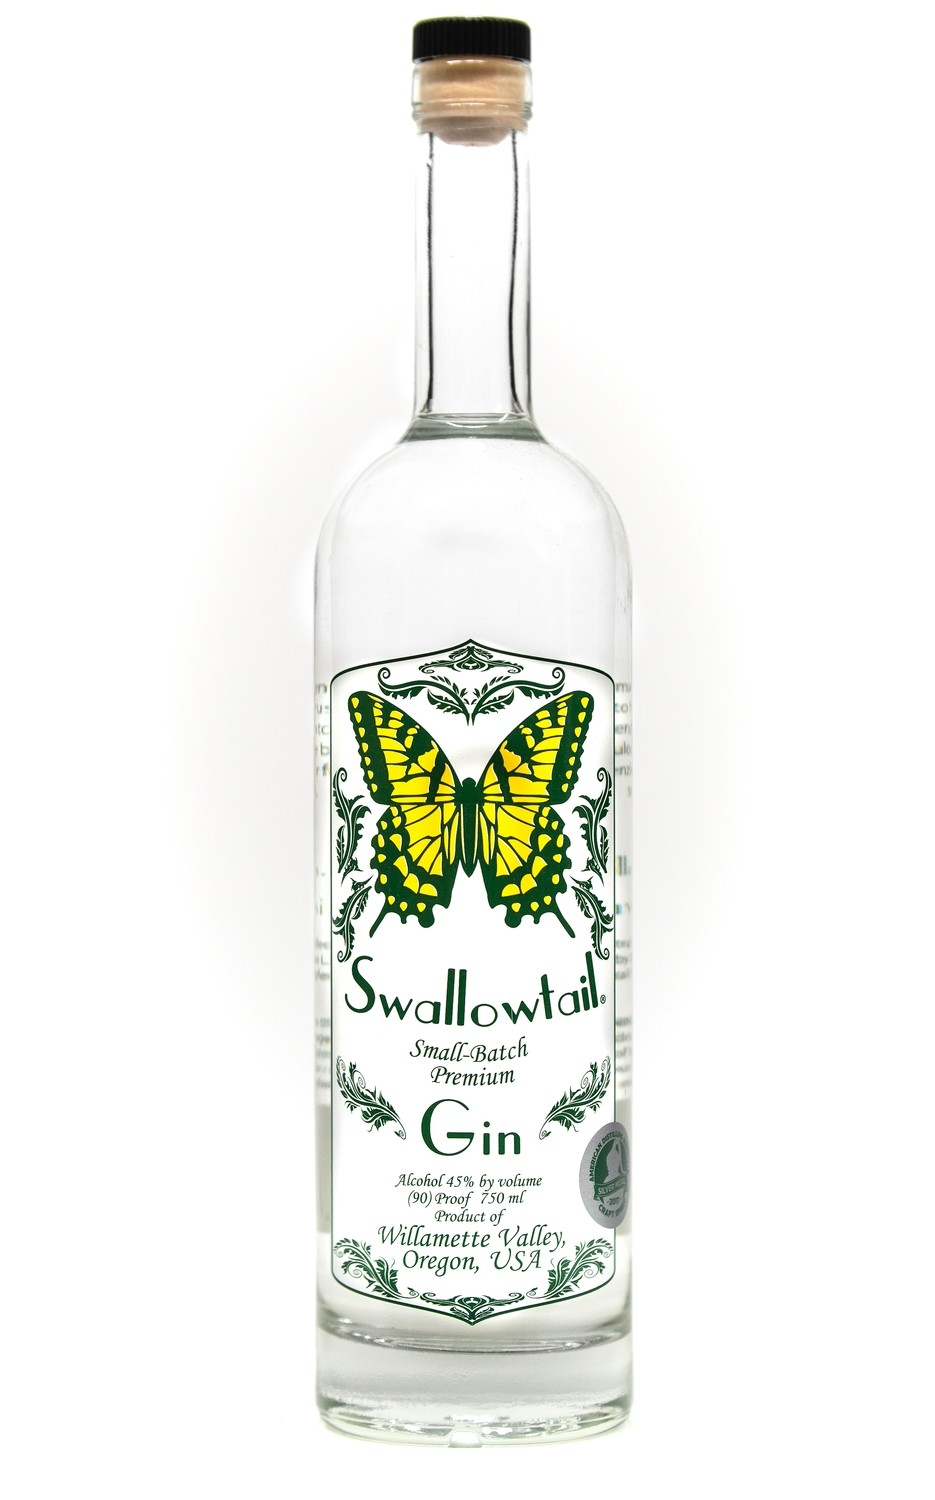 Swallowtail Small-Batch Premium Gin